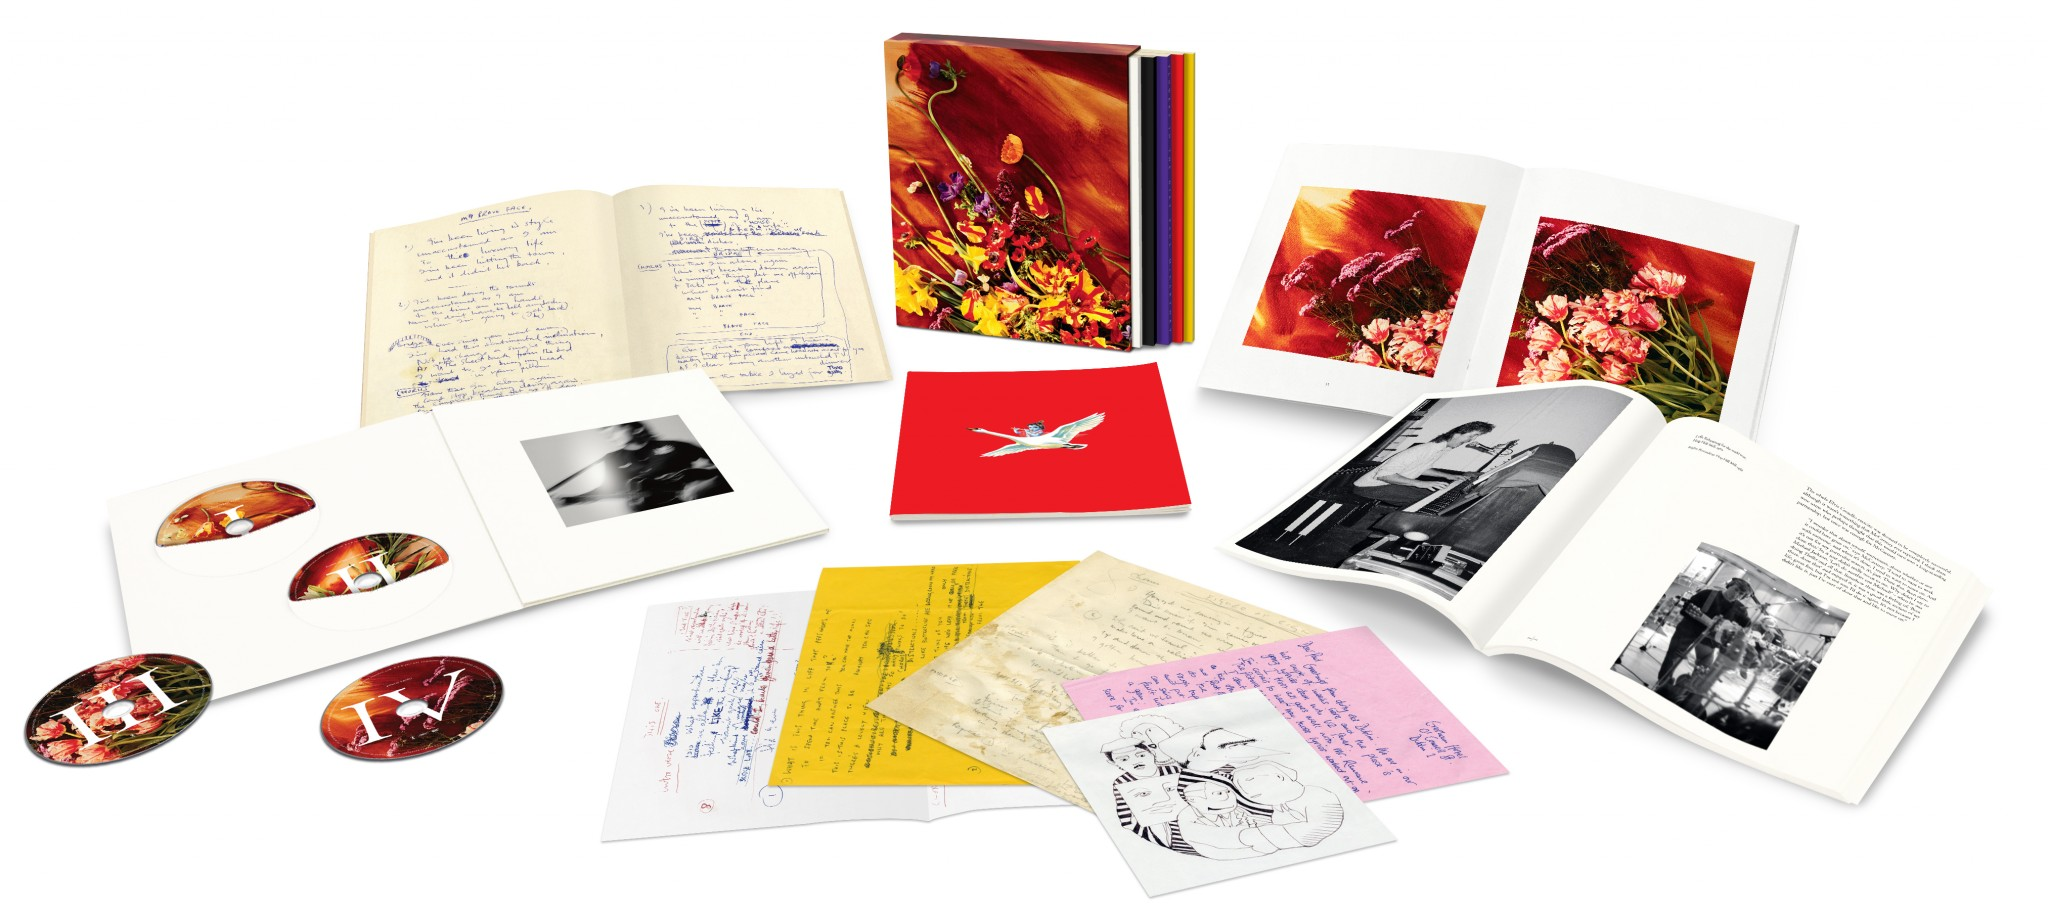 paulmccartney_flowersinthedirt_deluxe3cddvd_productshot